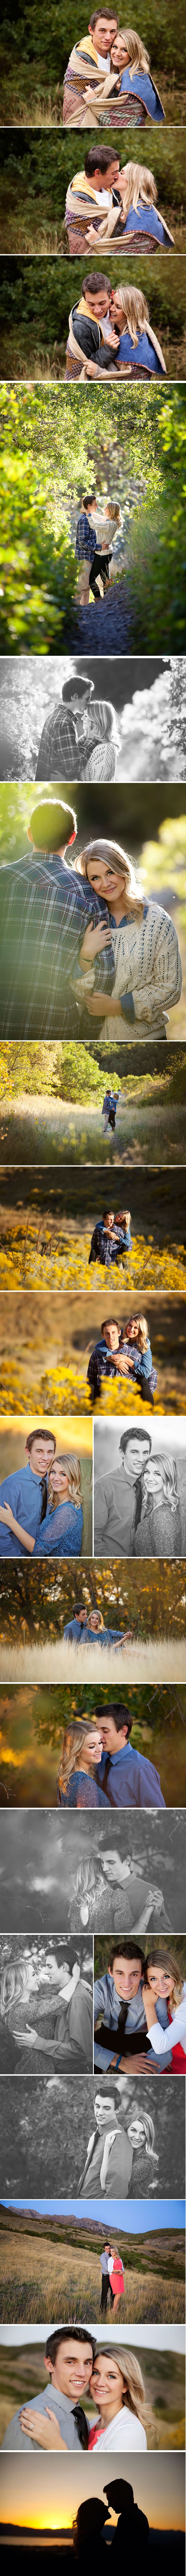 Chelsea Peterson Photography: Utah County Engagement Photography